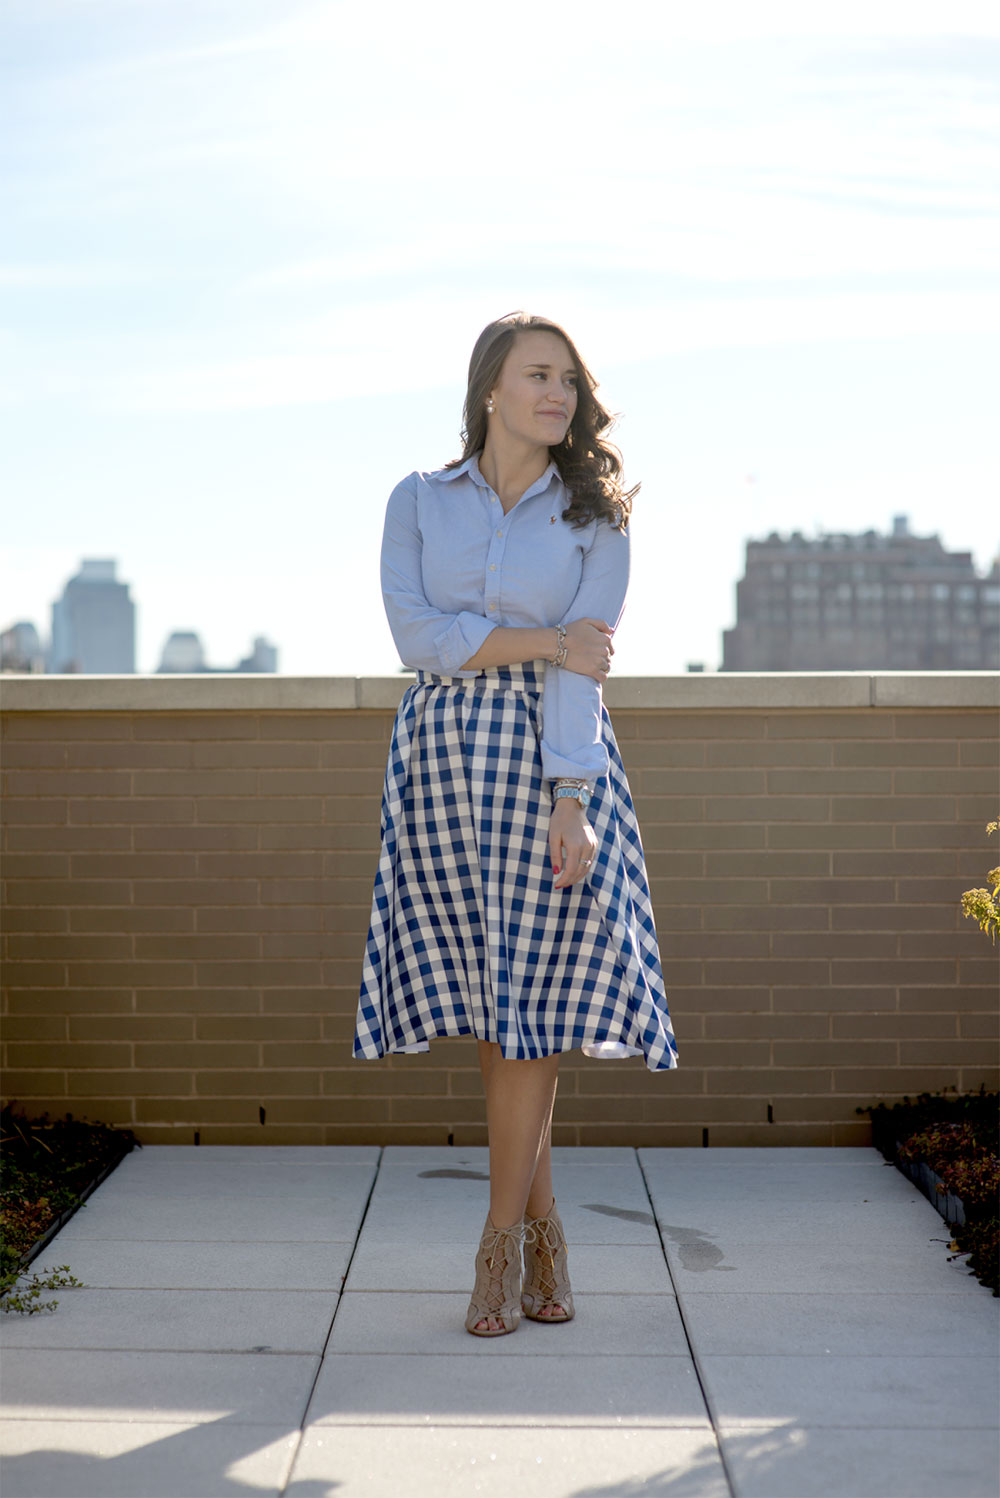 gingham skirt daily outfit